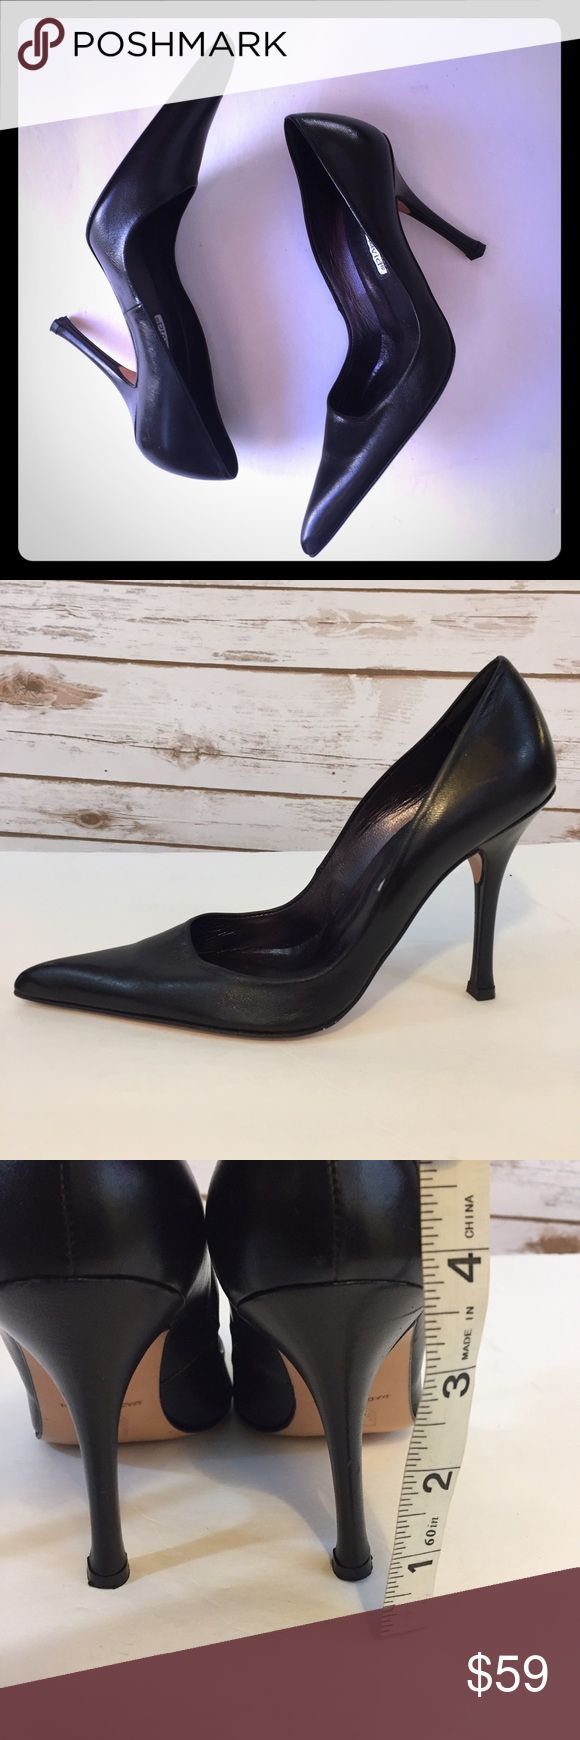 """CHARLES DAVID CLASSIC POINTED TOE HEELS - sz. 5 These CHARLES DAVID CLASSIC POINTED TOE HEELS/PUMPS are gently used with little signs of wear as seen on the sole. Not on upper.  The leather is soft and excellent quality.  These shoes are perfect for the office.  Heel is 3.5"""" Charles David Shoes Heels"""